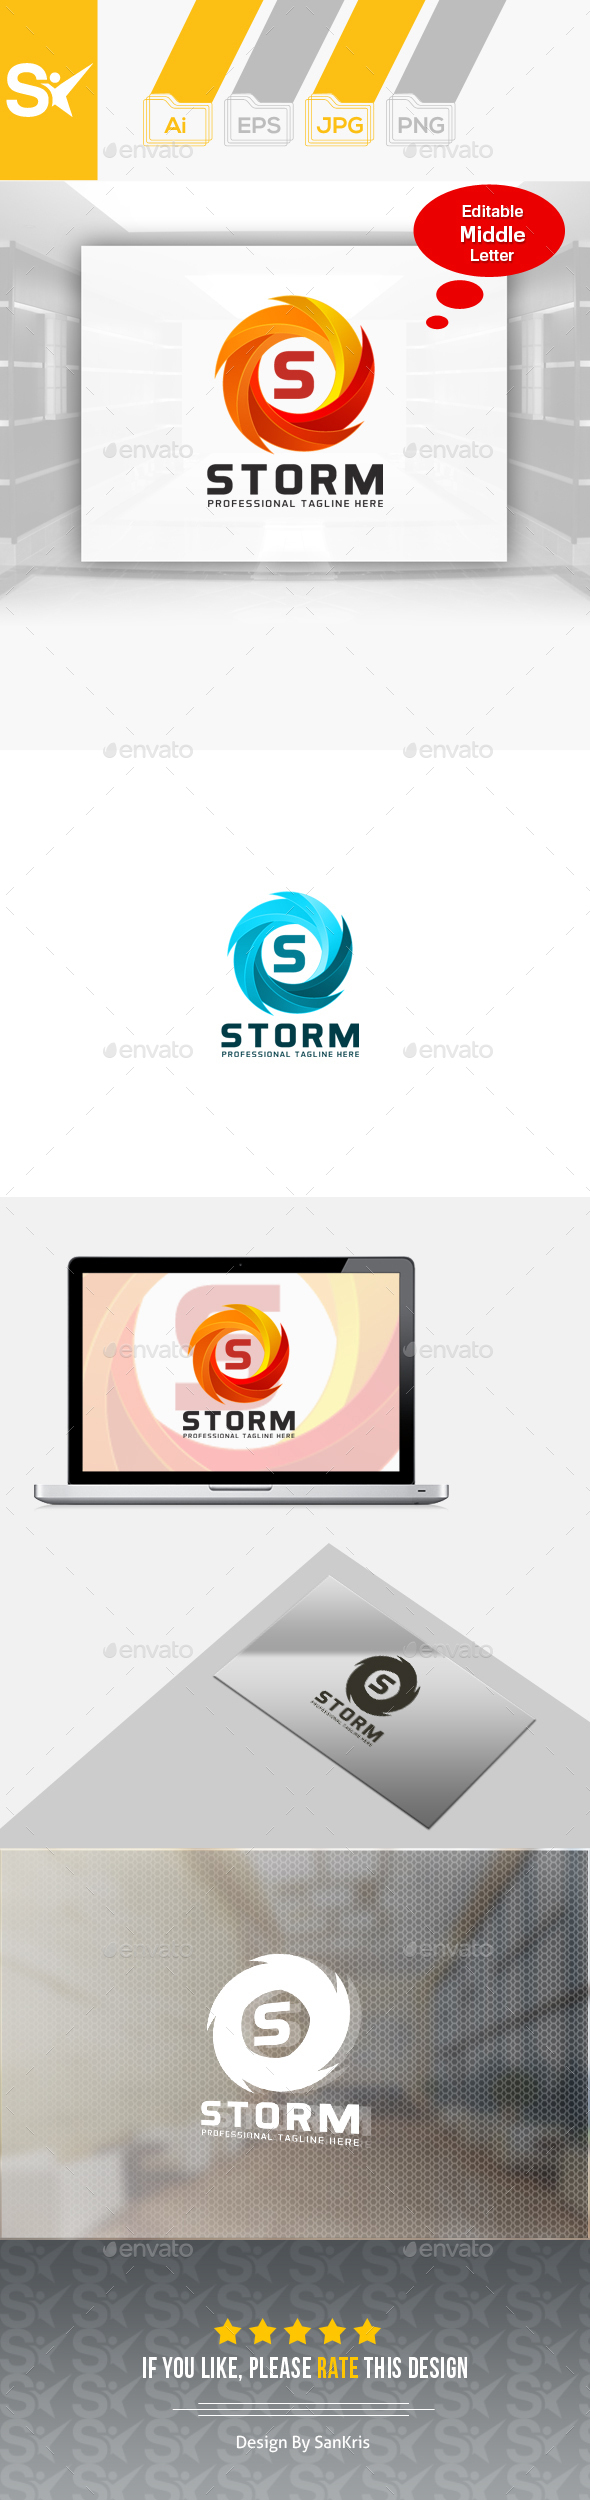 Storm Logo Template - Nature Logo Templates